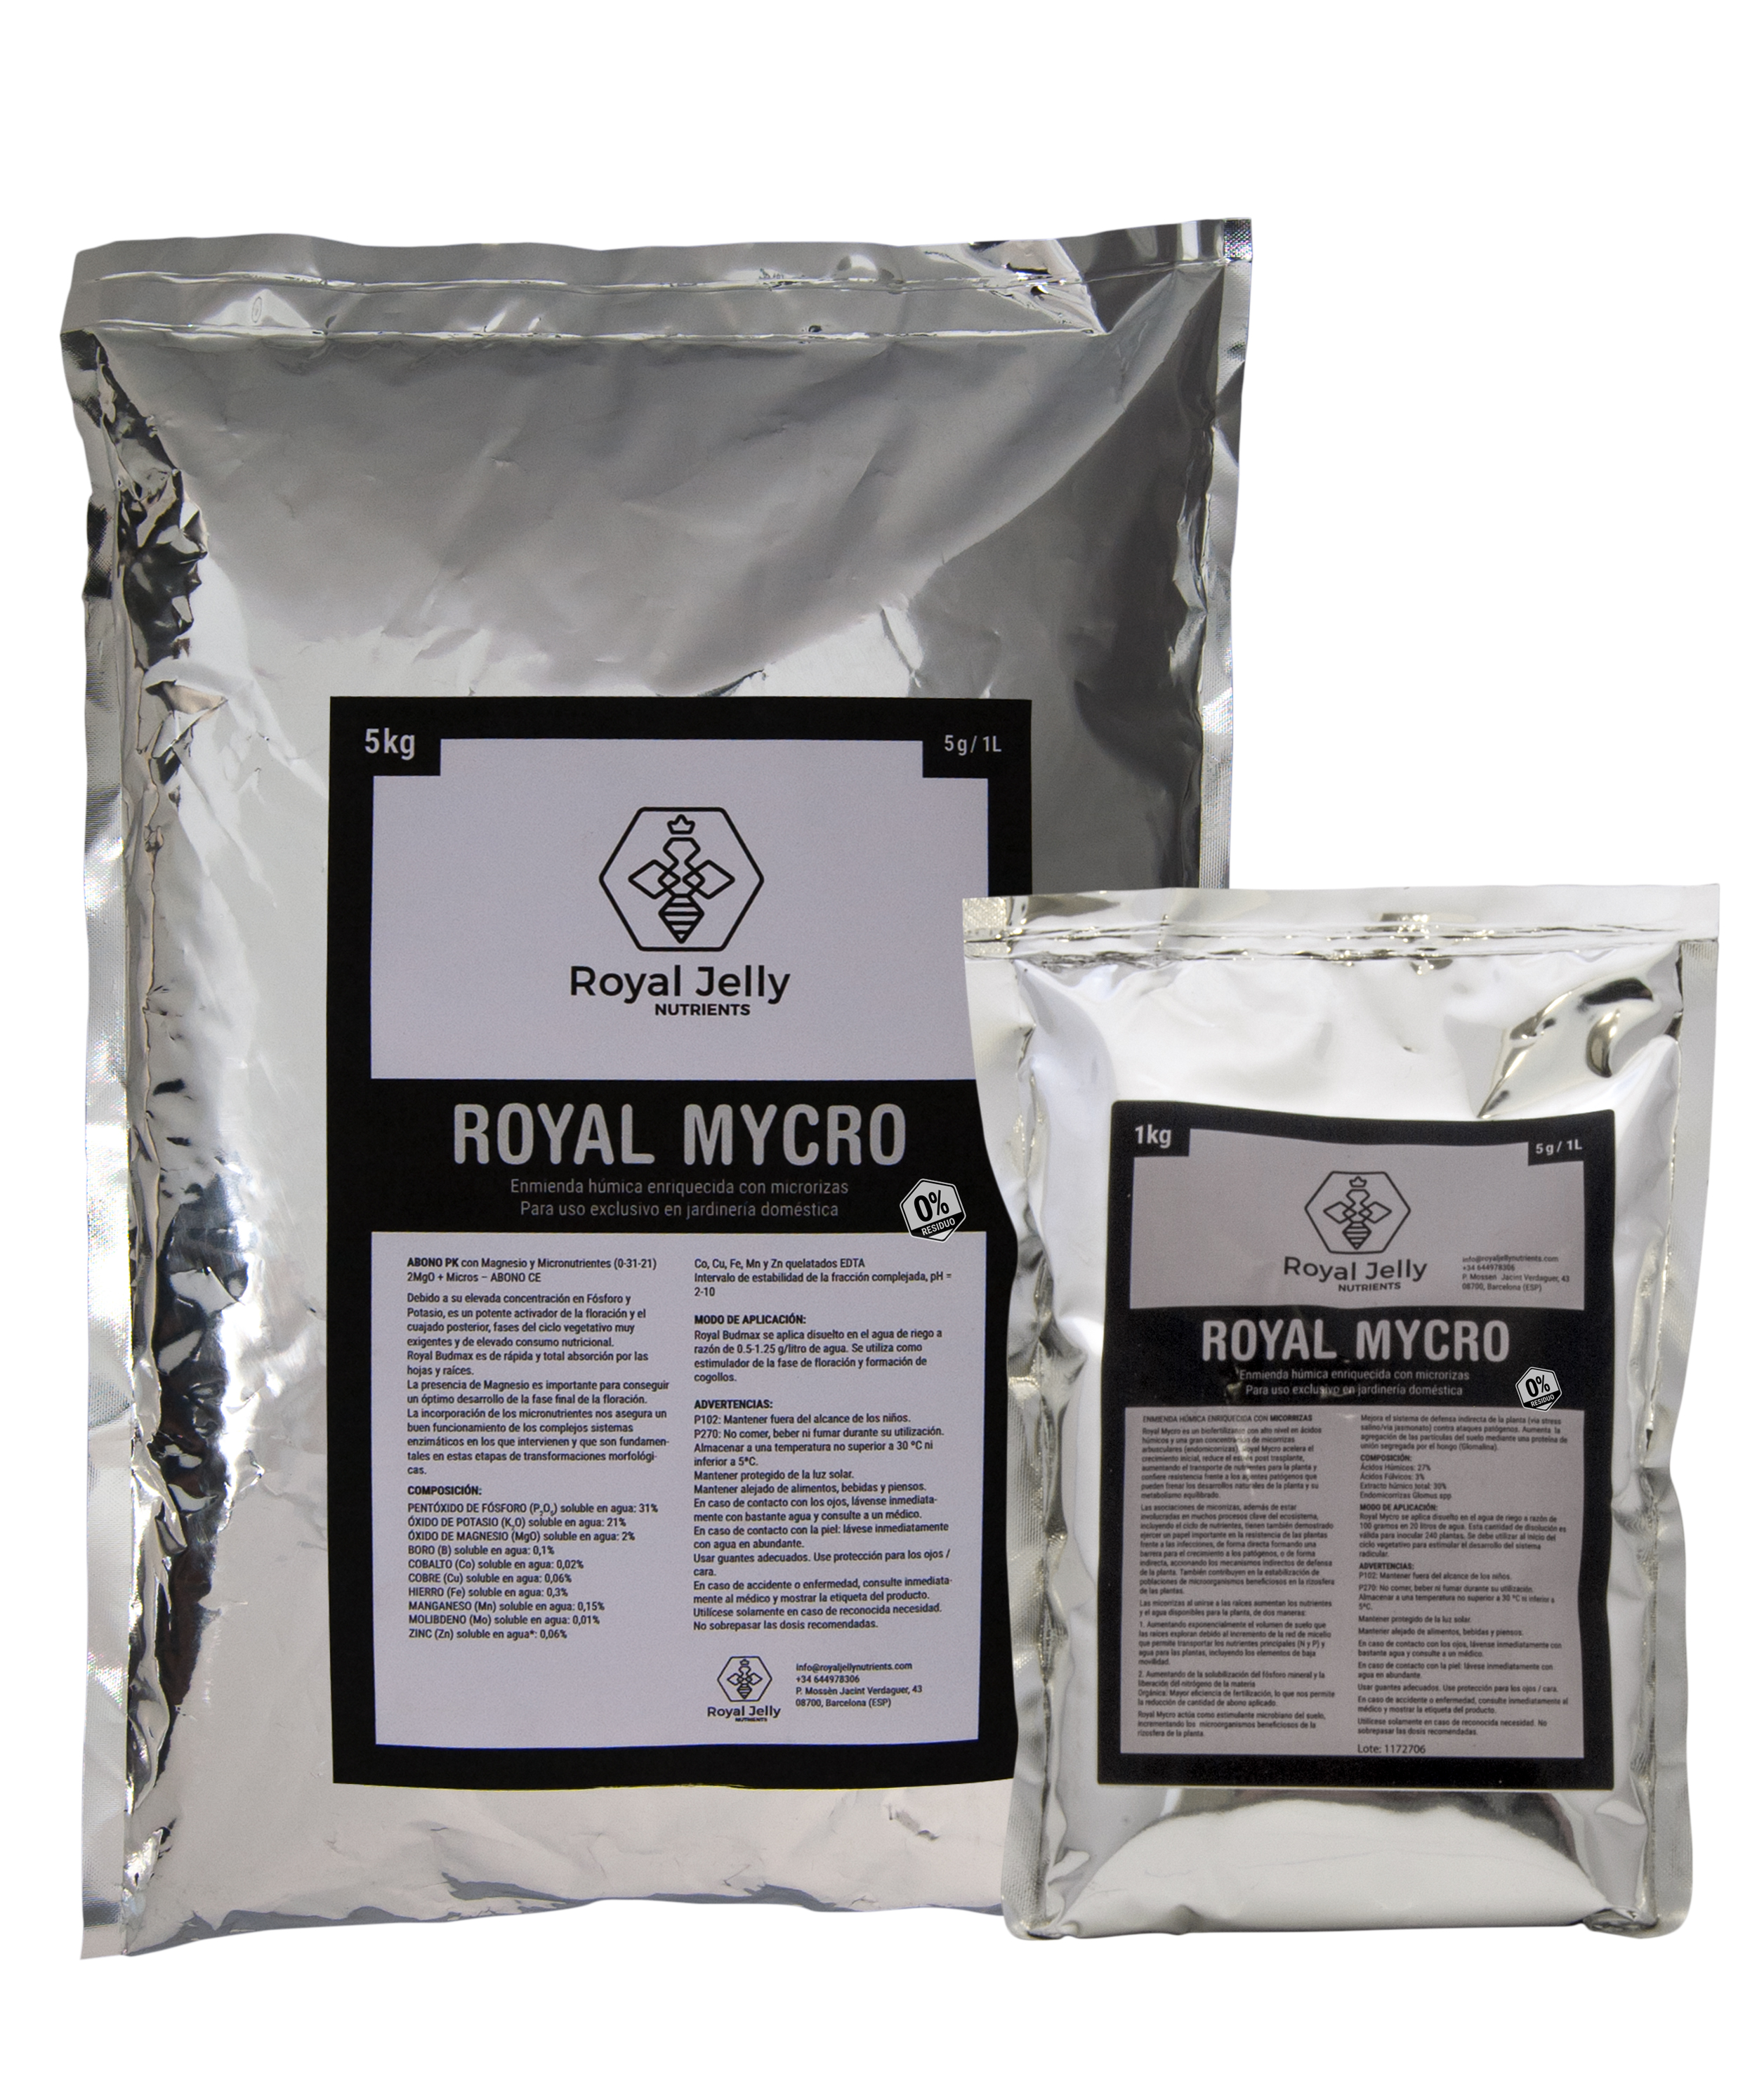 Royal mycro bodegó